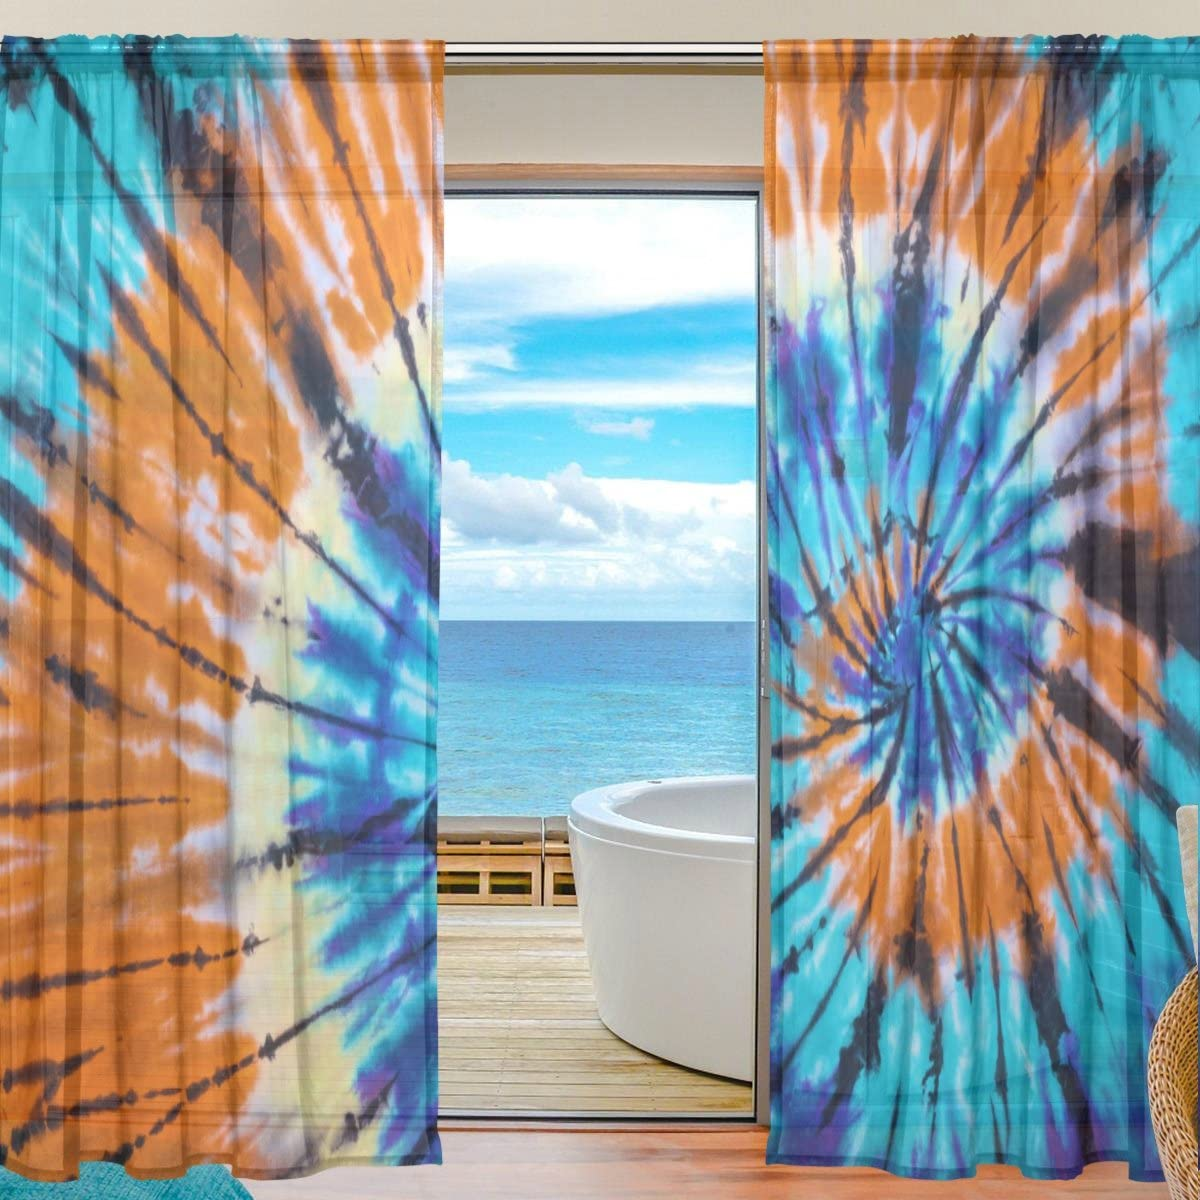 SEULIFE Window Sheer Curtain, Abstract Swirl Tie Dye Voile Curtain Drapes for Door Kitchen Living Room Bedroom 55×78 inches 2 Panels